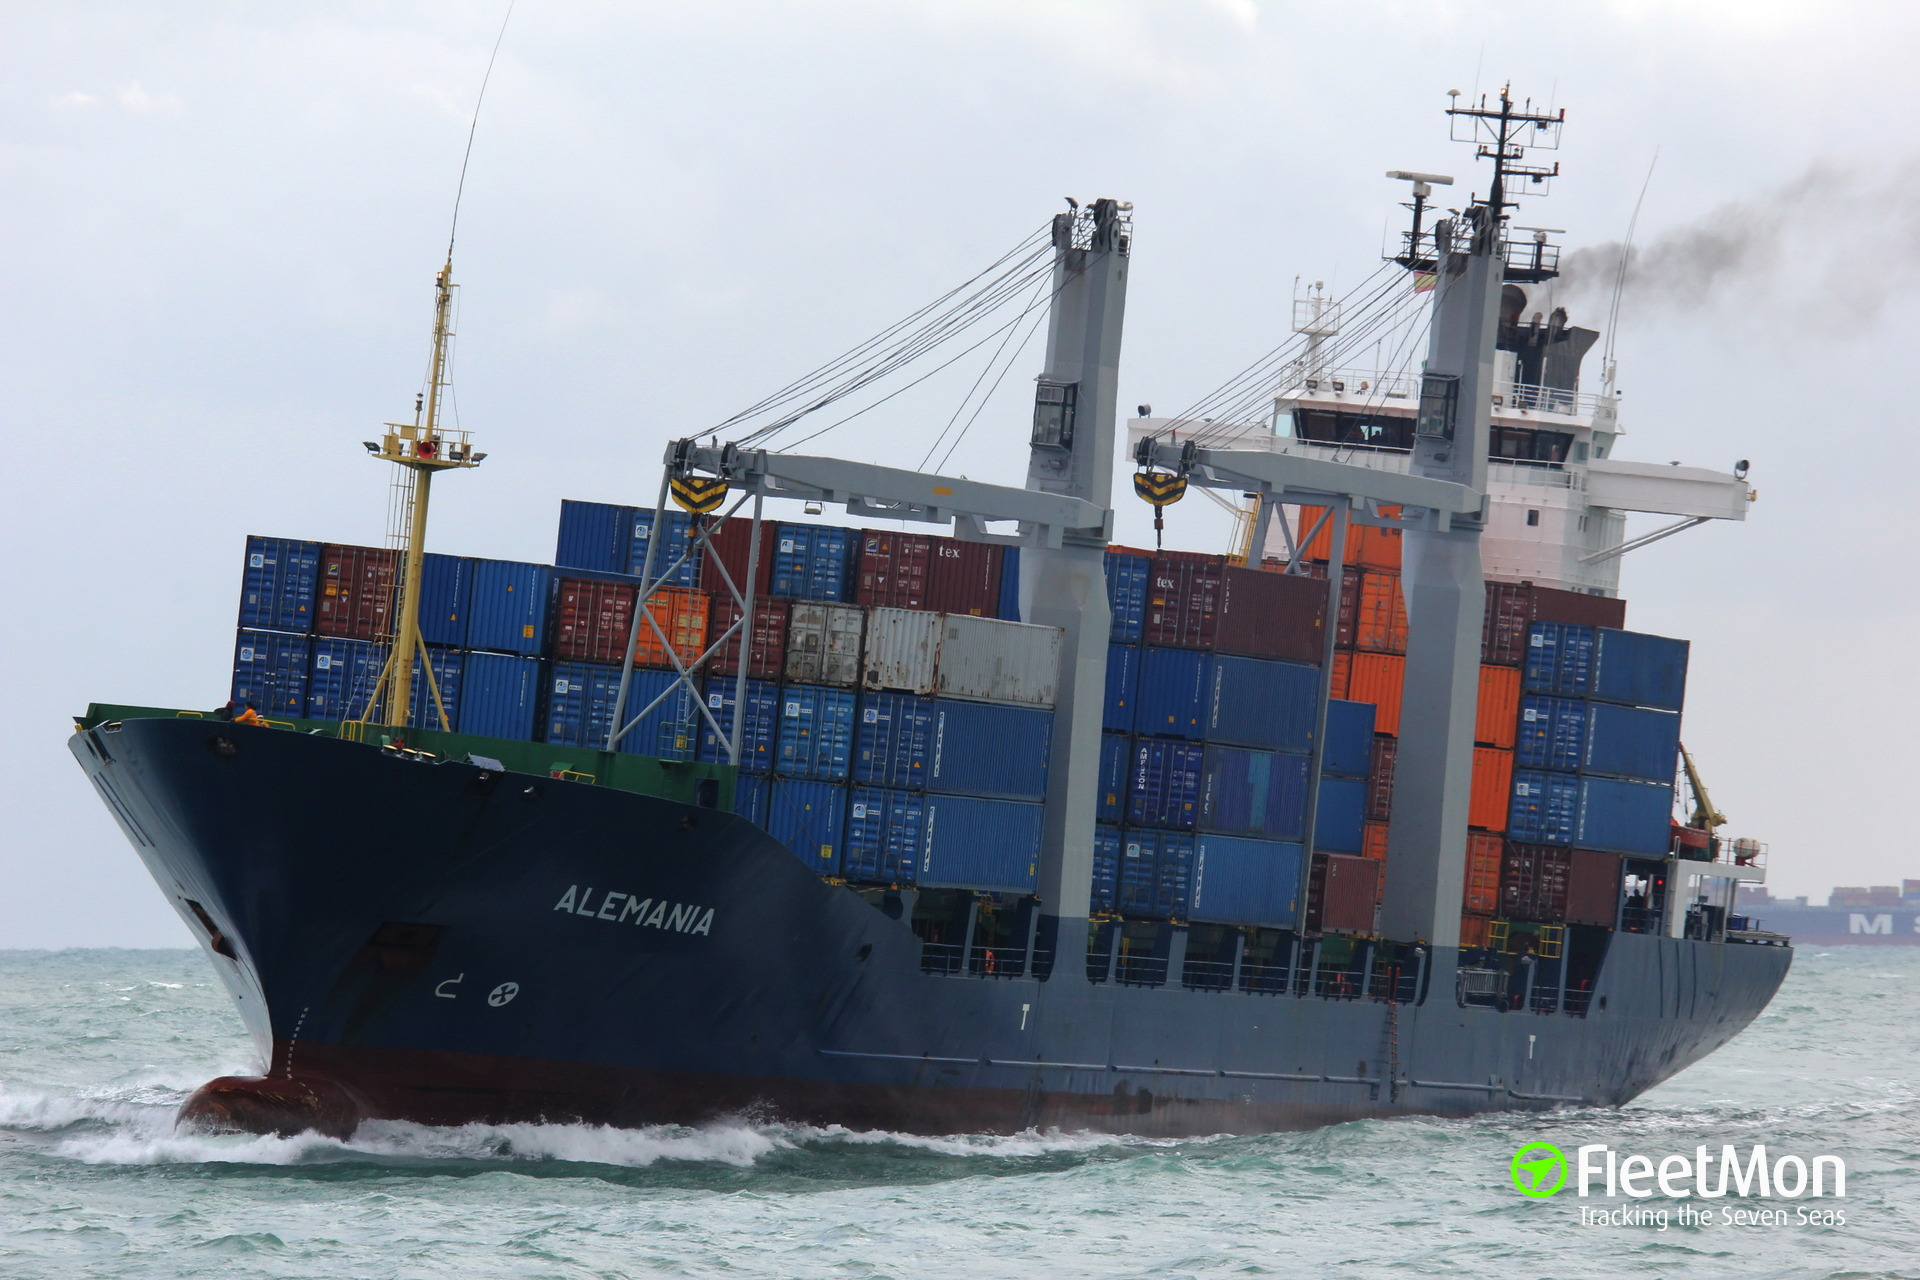 Container ship RUNNER troubled in Aegean Sea, taken on tow